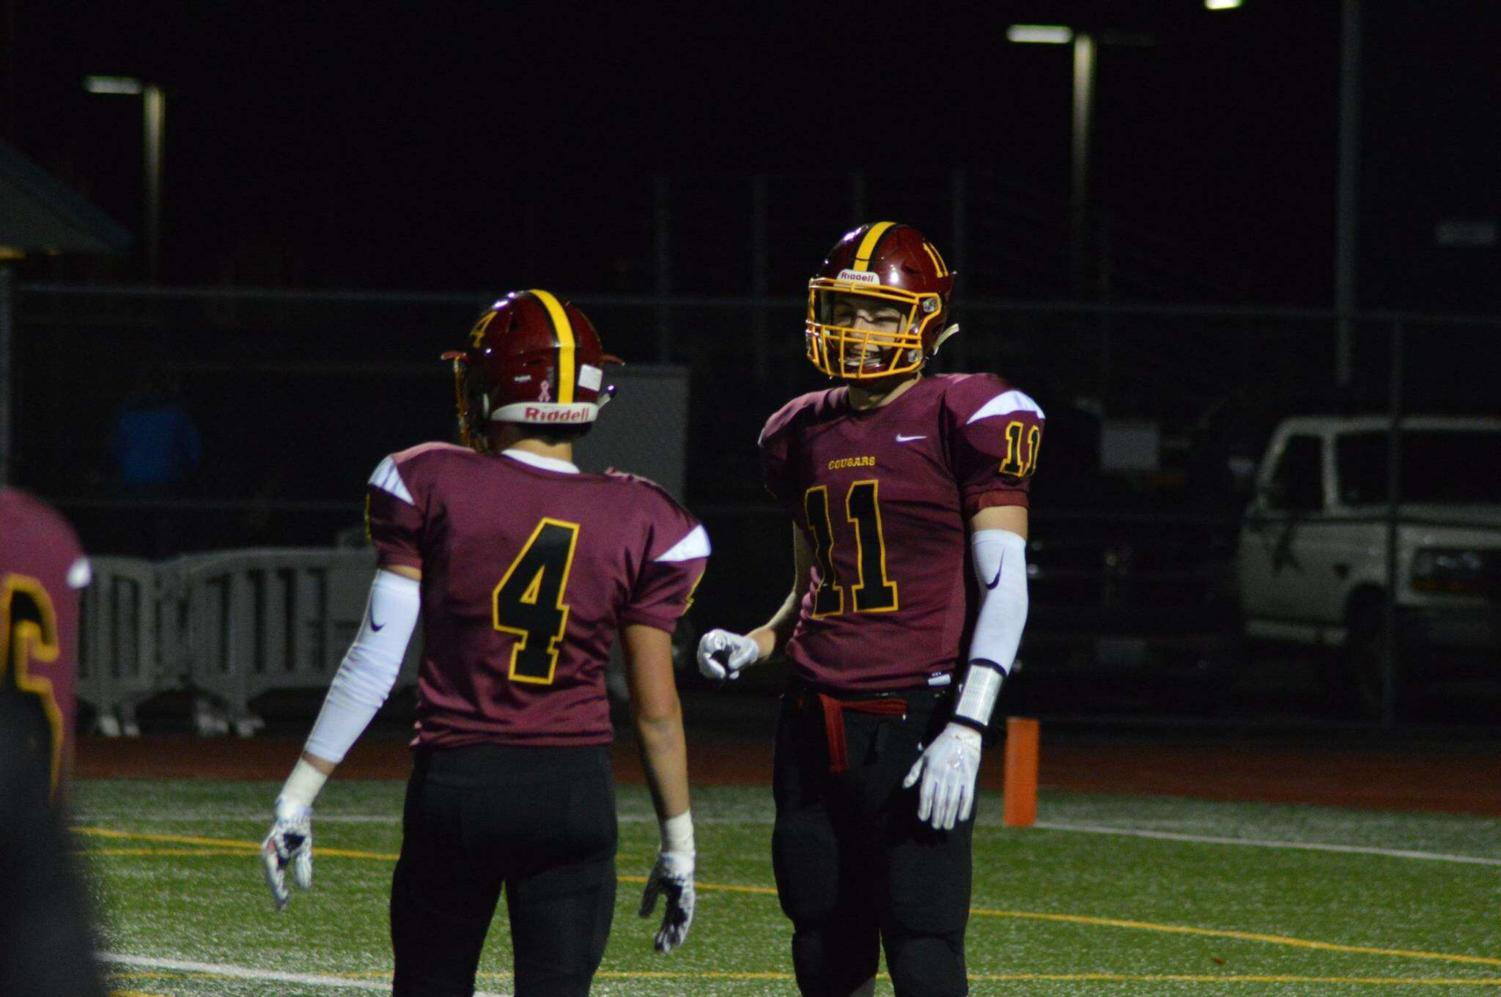 Grant Erikson #11 with Chad Garland #4 during a game.